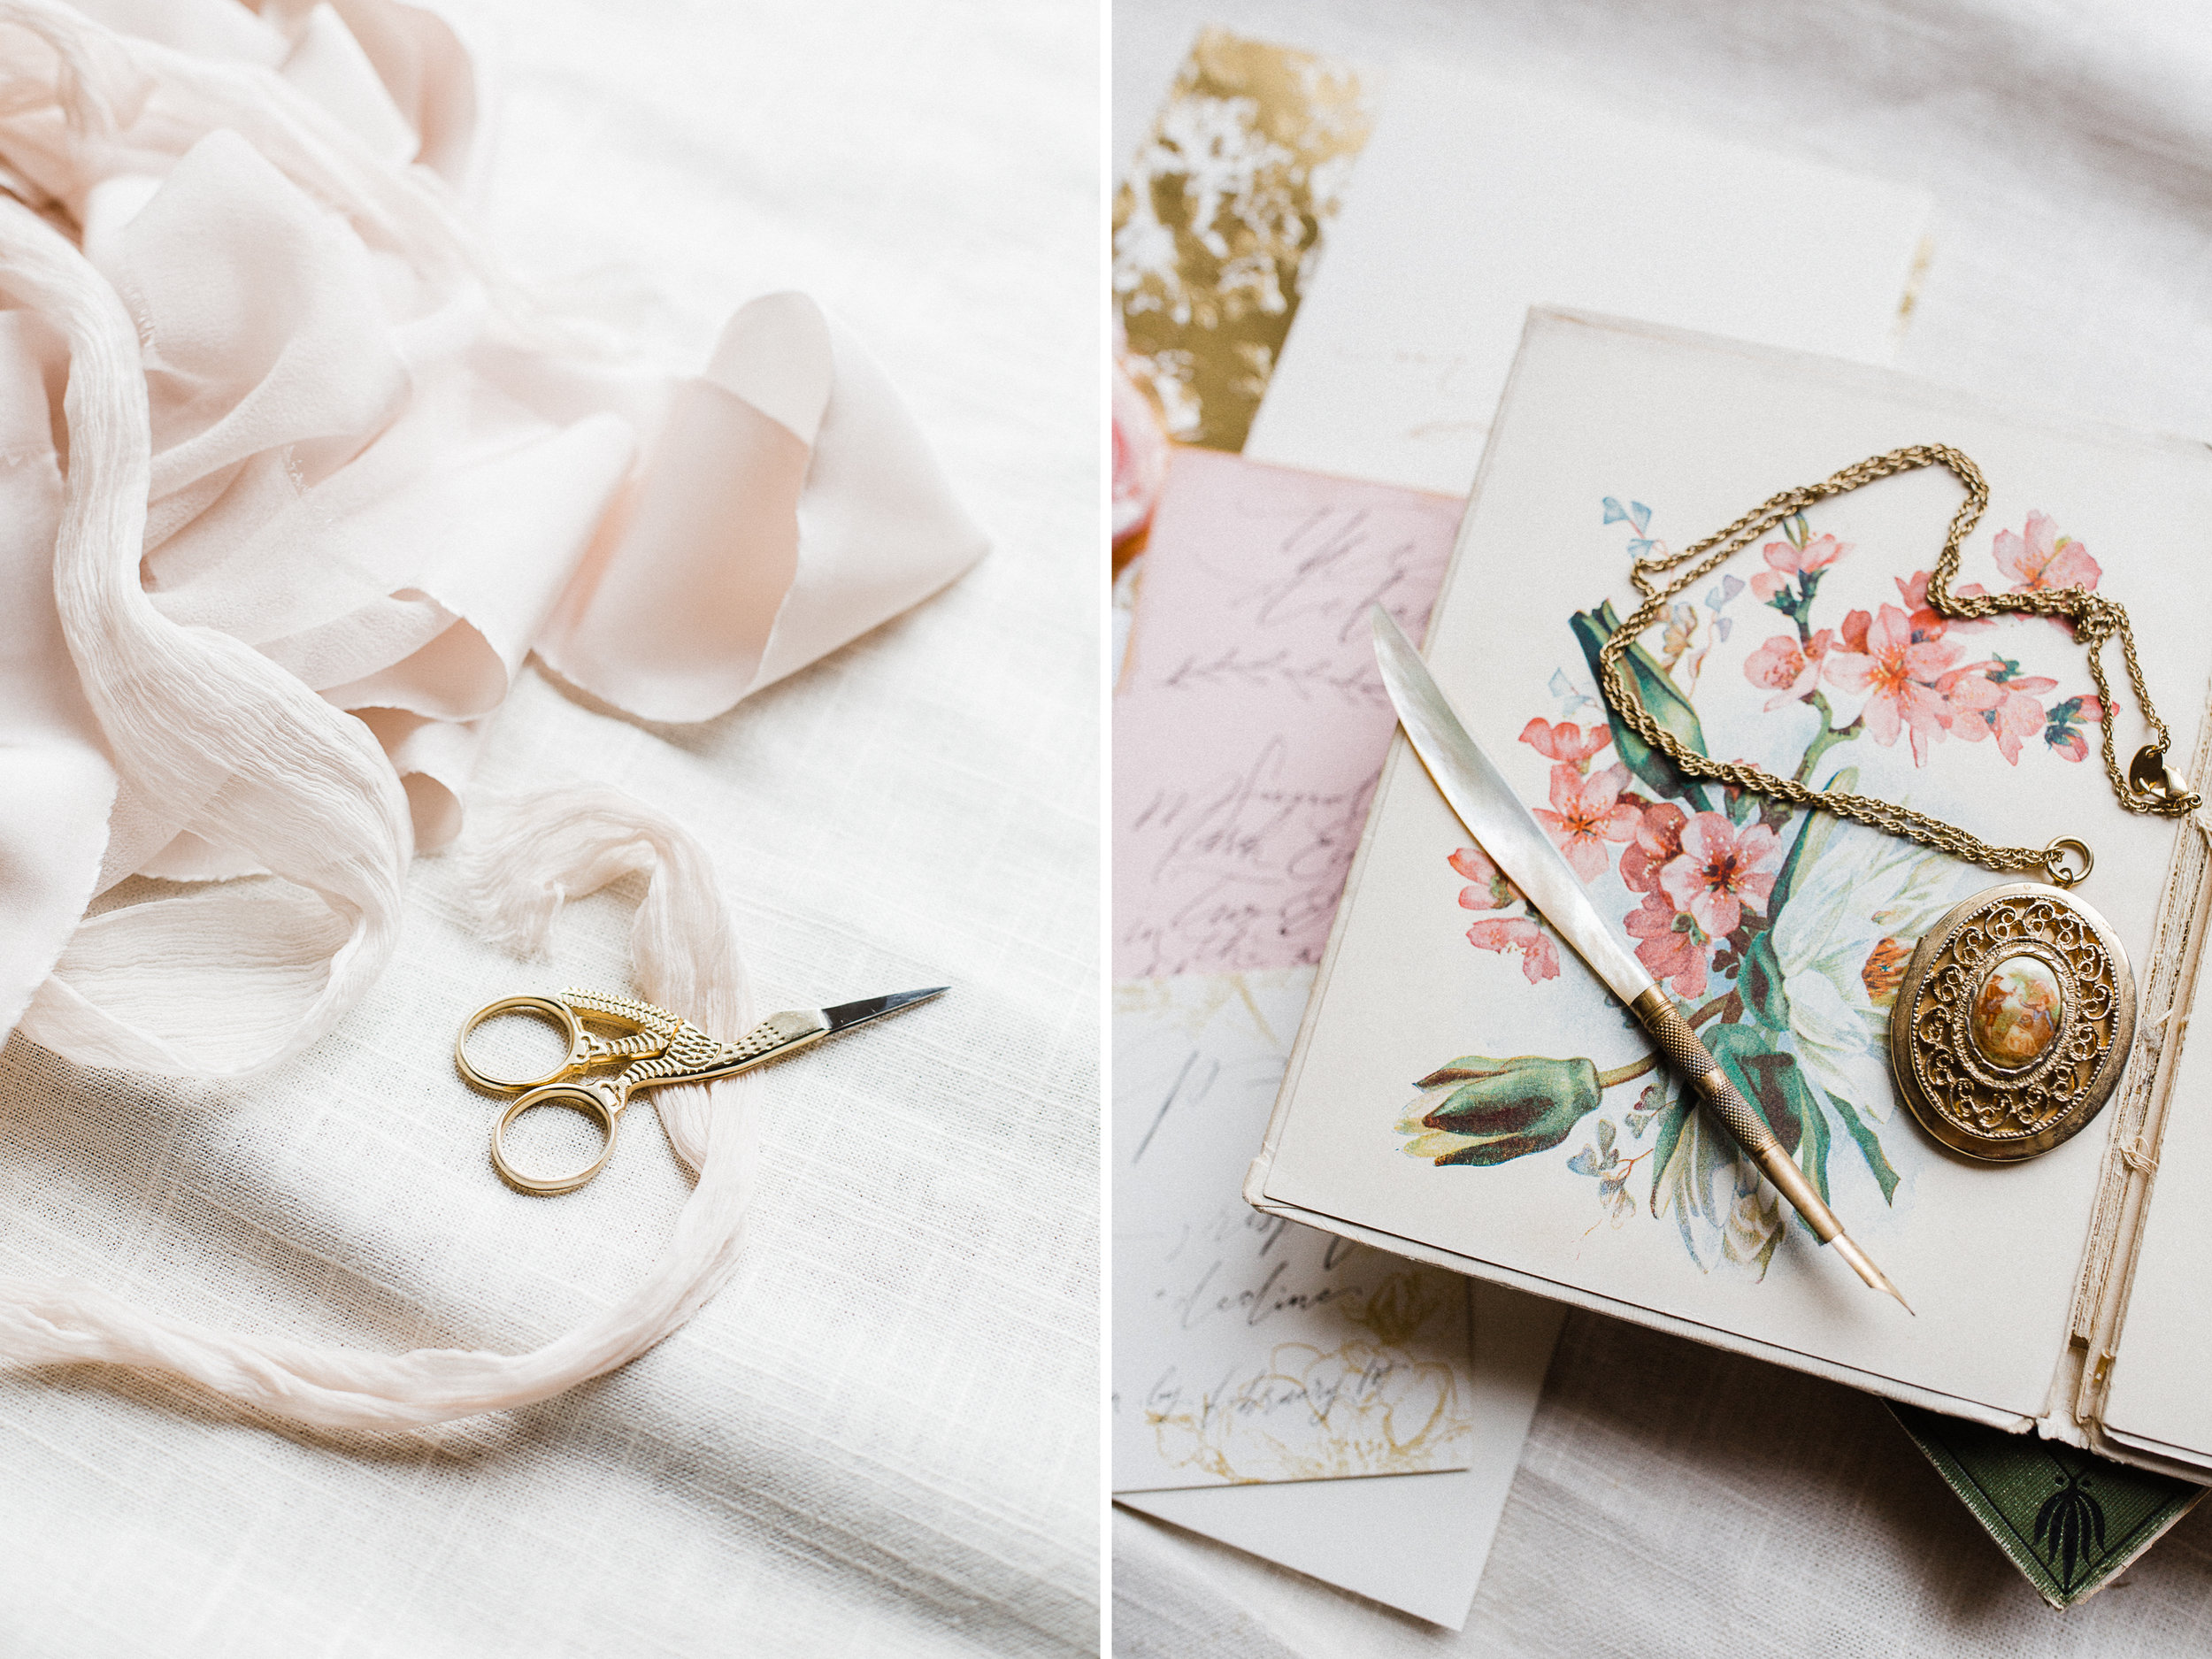 dorothy_louise_photography_old_stone_house_st._charles_bridal_inspiration1.jpg